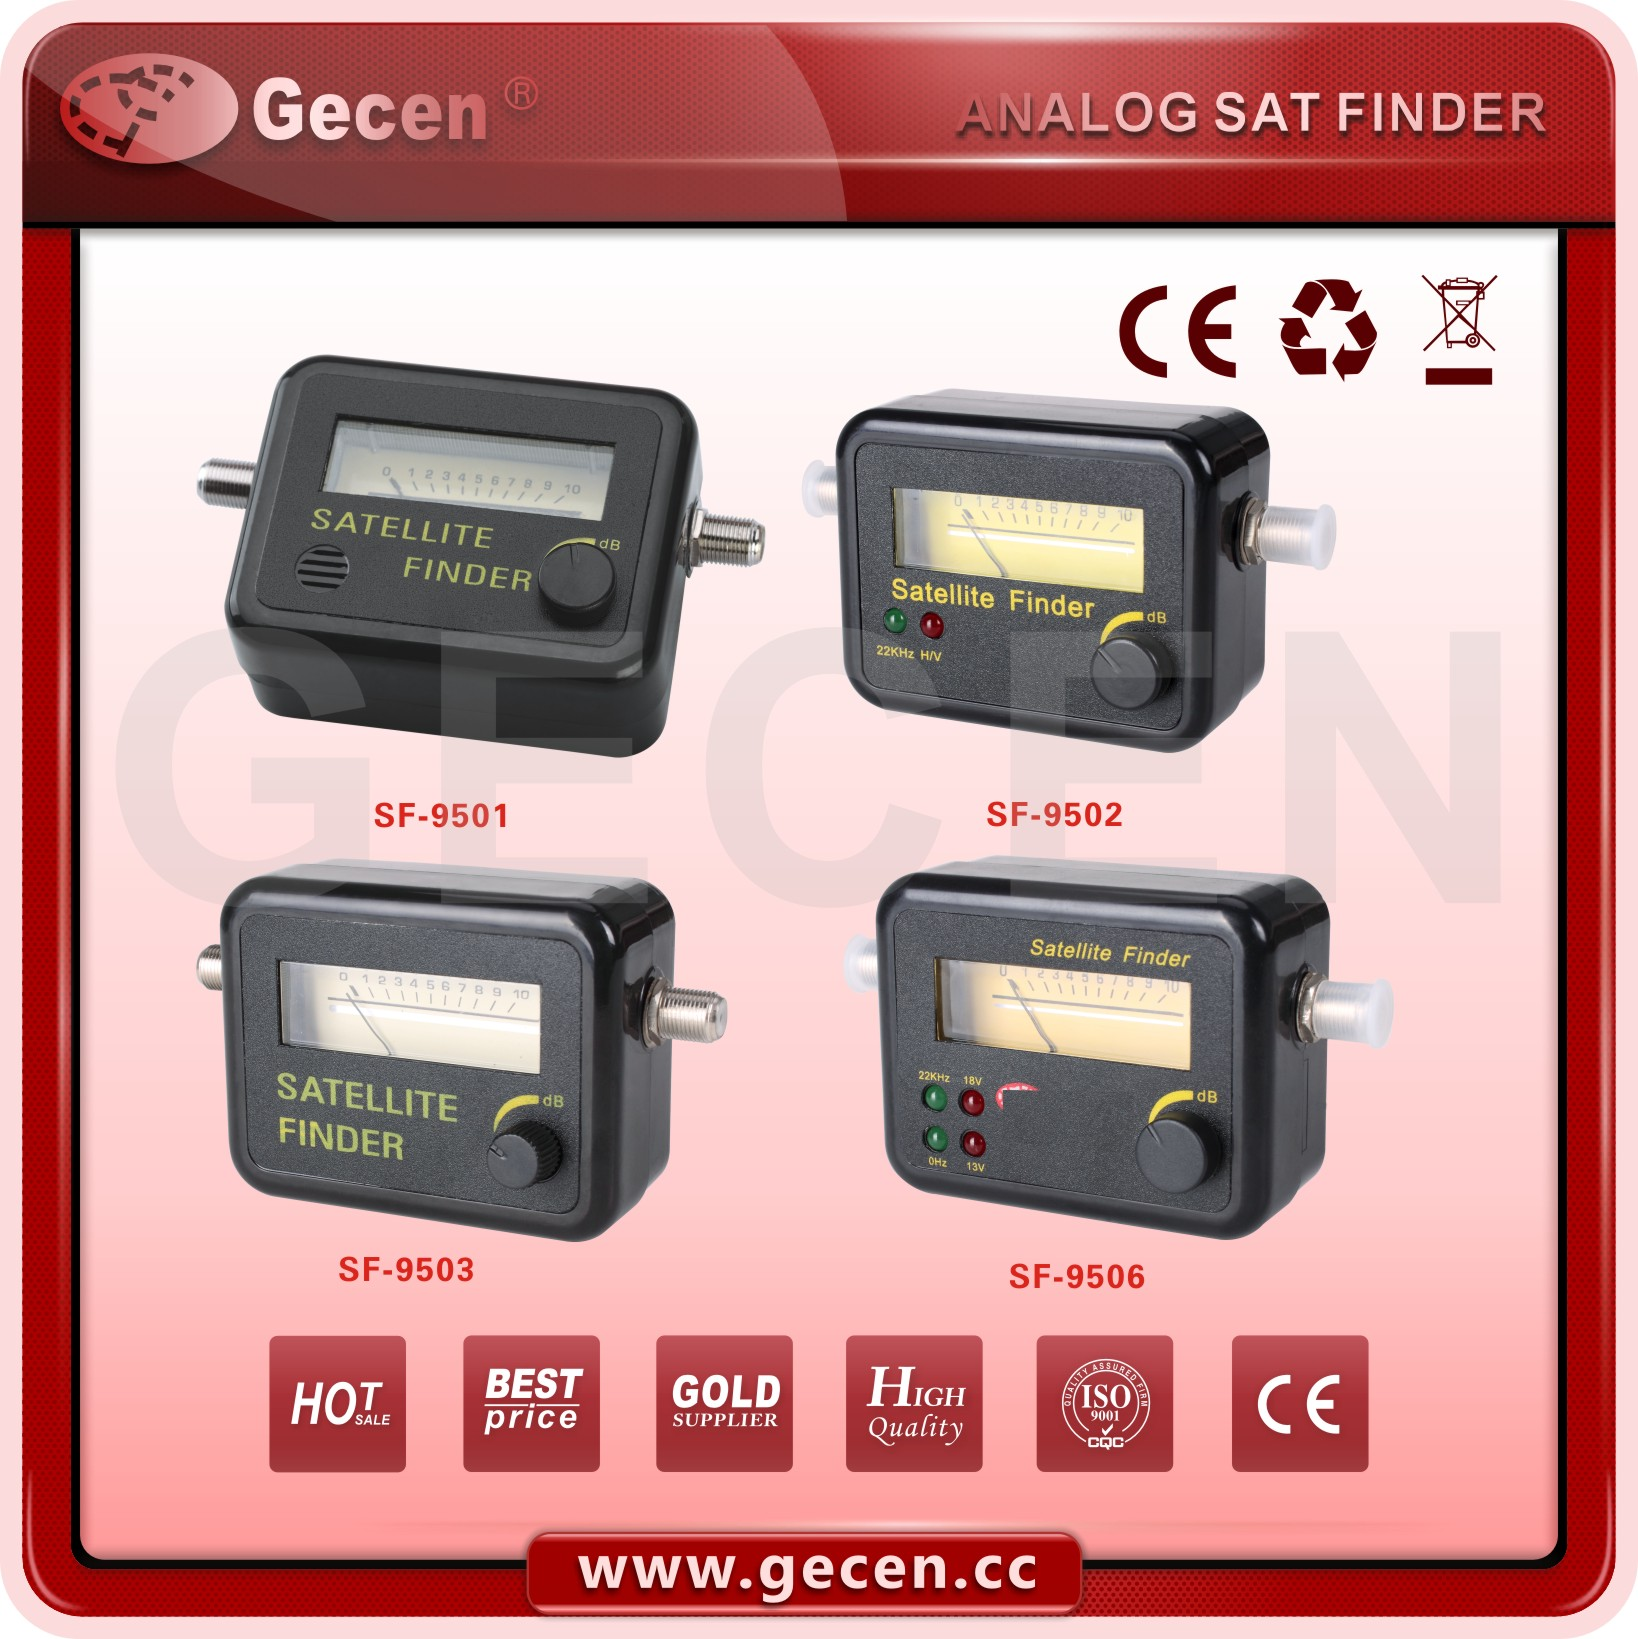 2016 GECEN Satellite Finder 950-2150MHz DC pass to LNB SF-9506